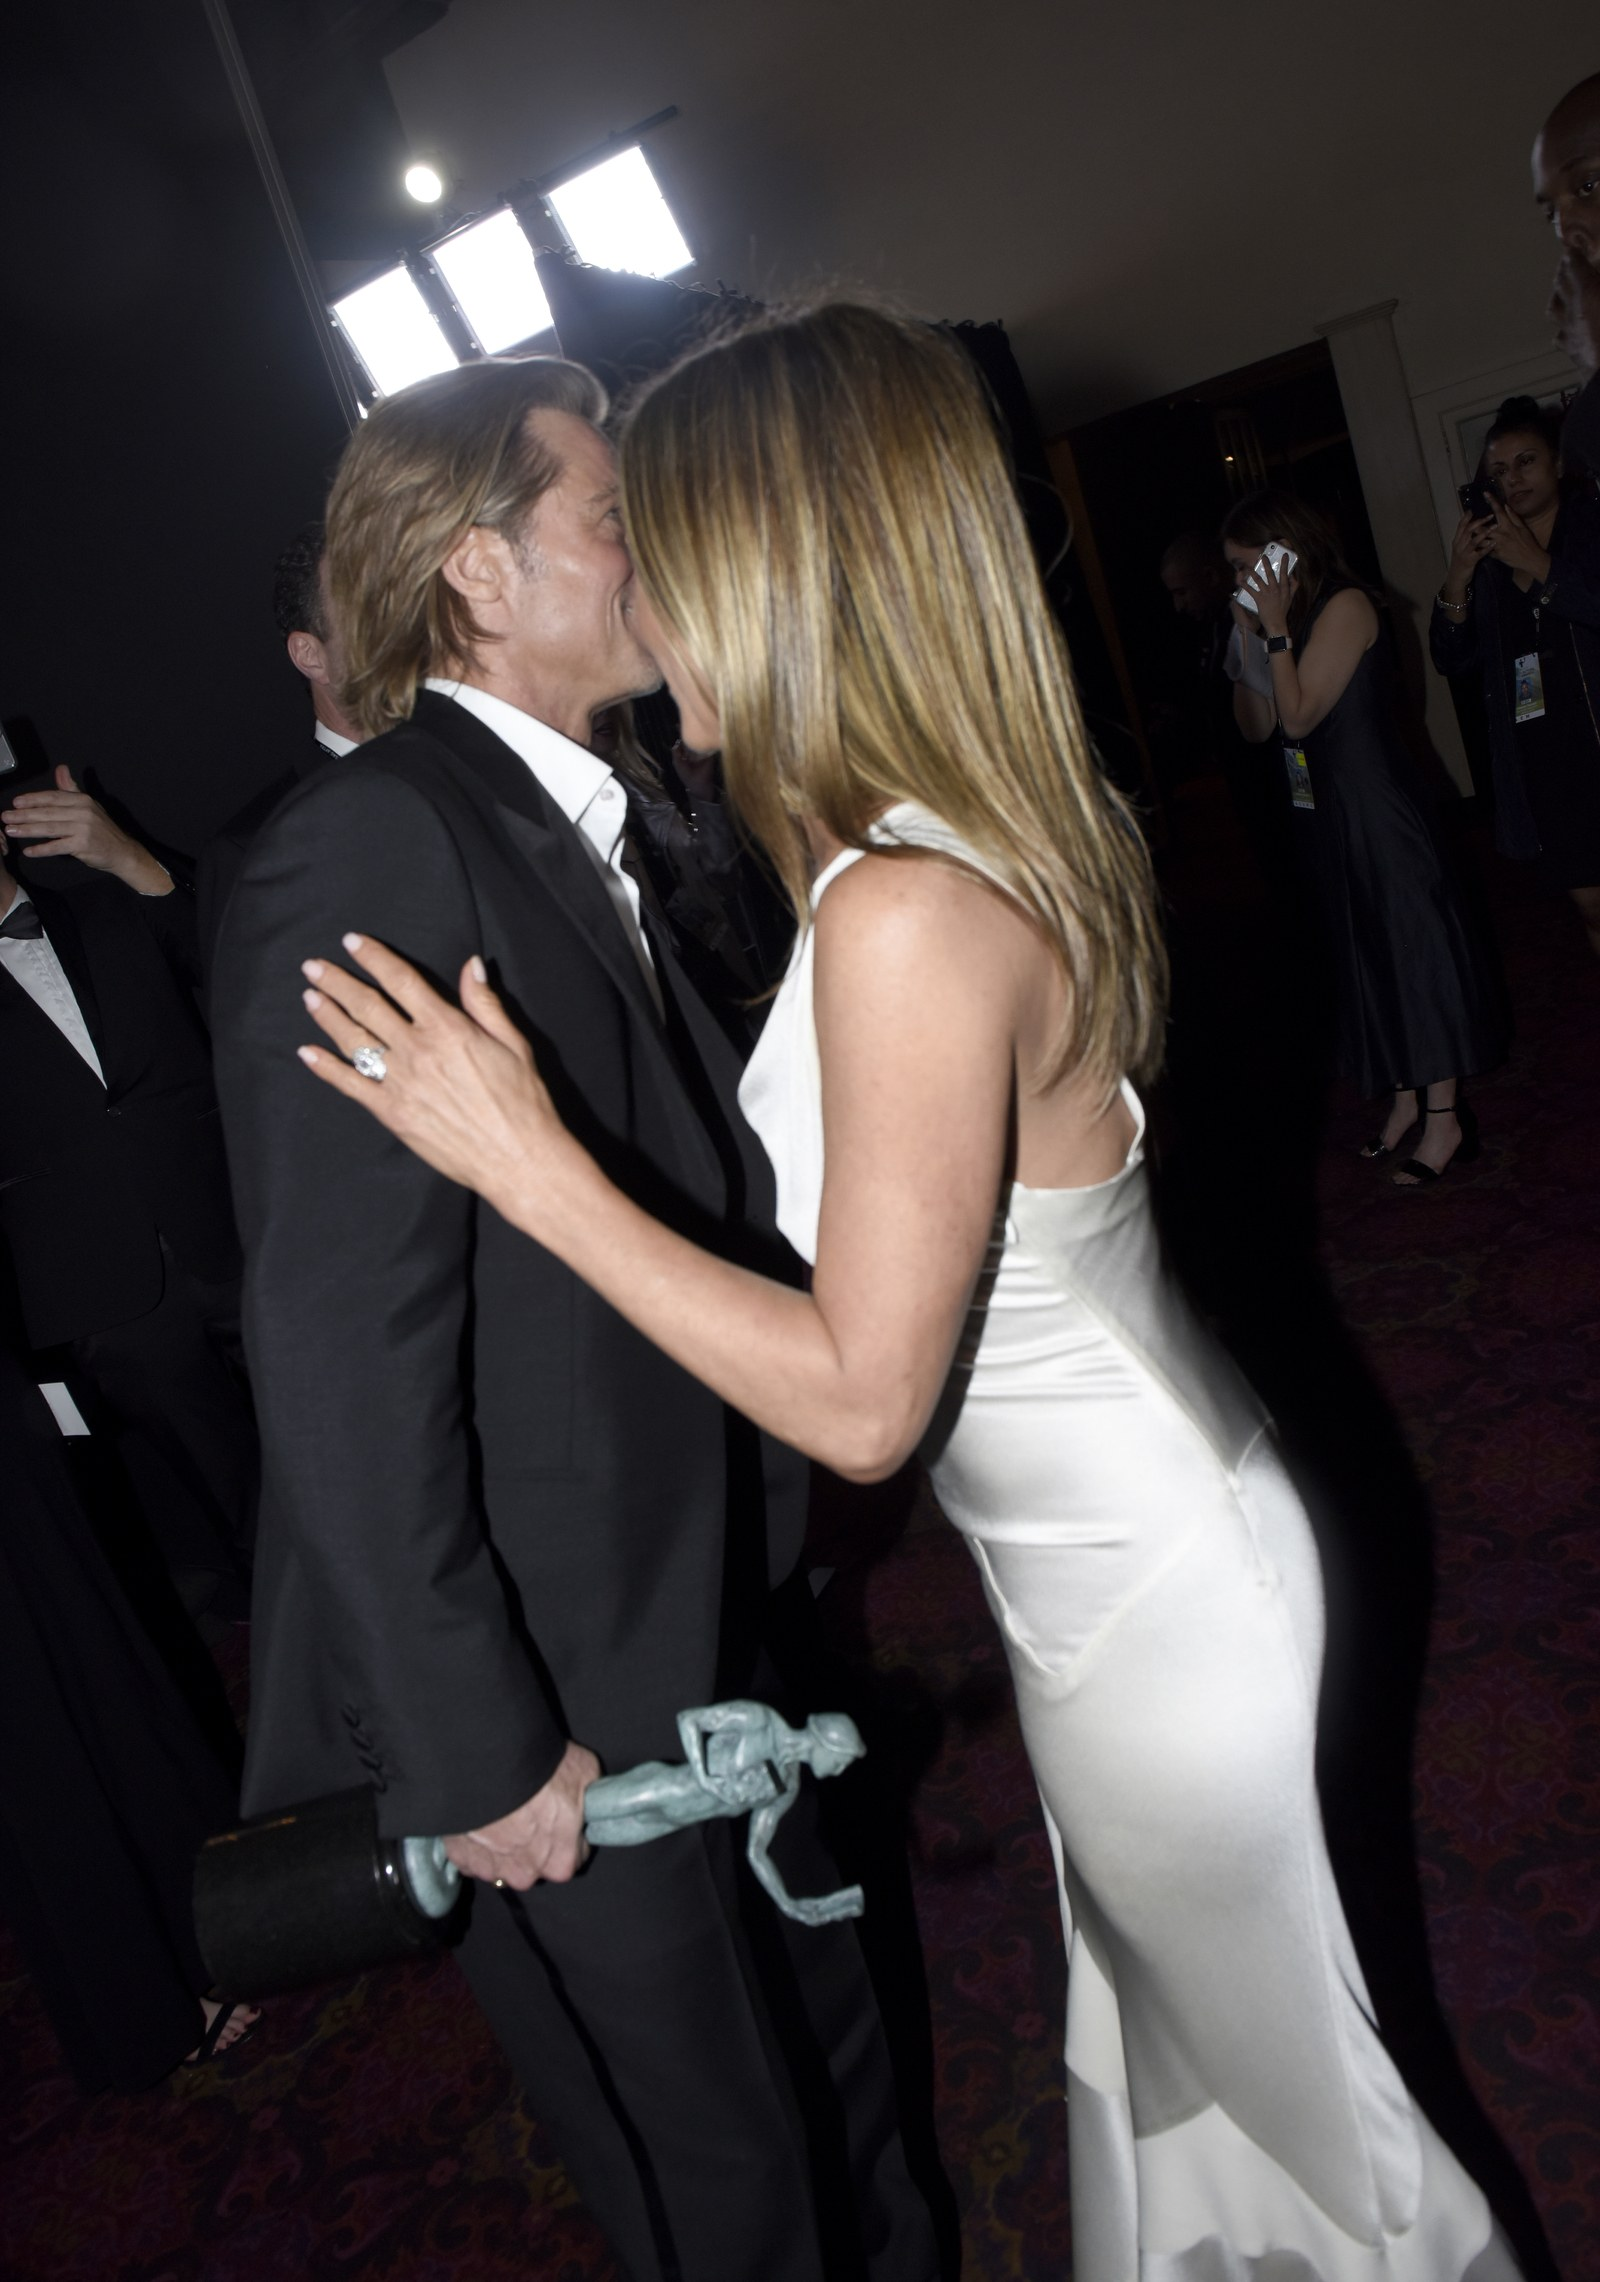 Brad Pitt and Jennifer Aniston attend the 26th Annual Screen Actors Guild Awards